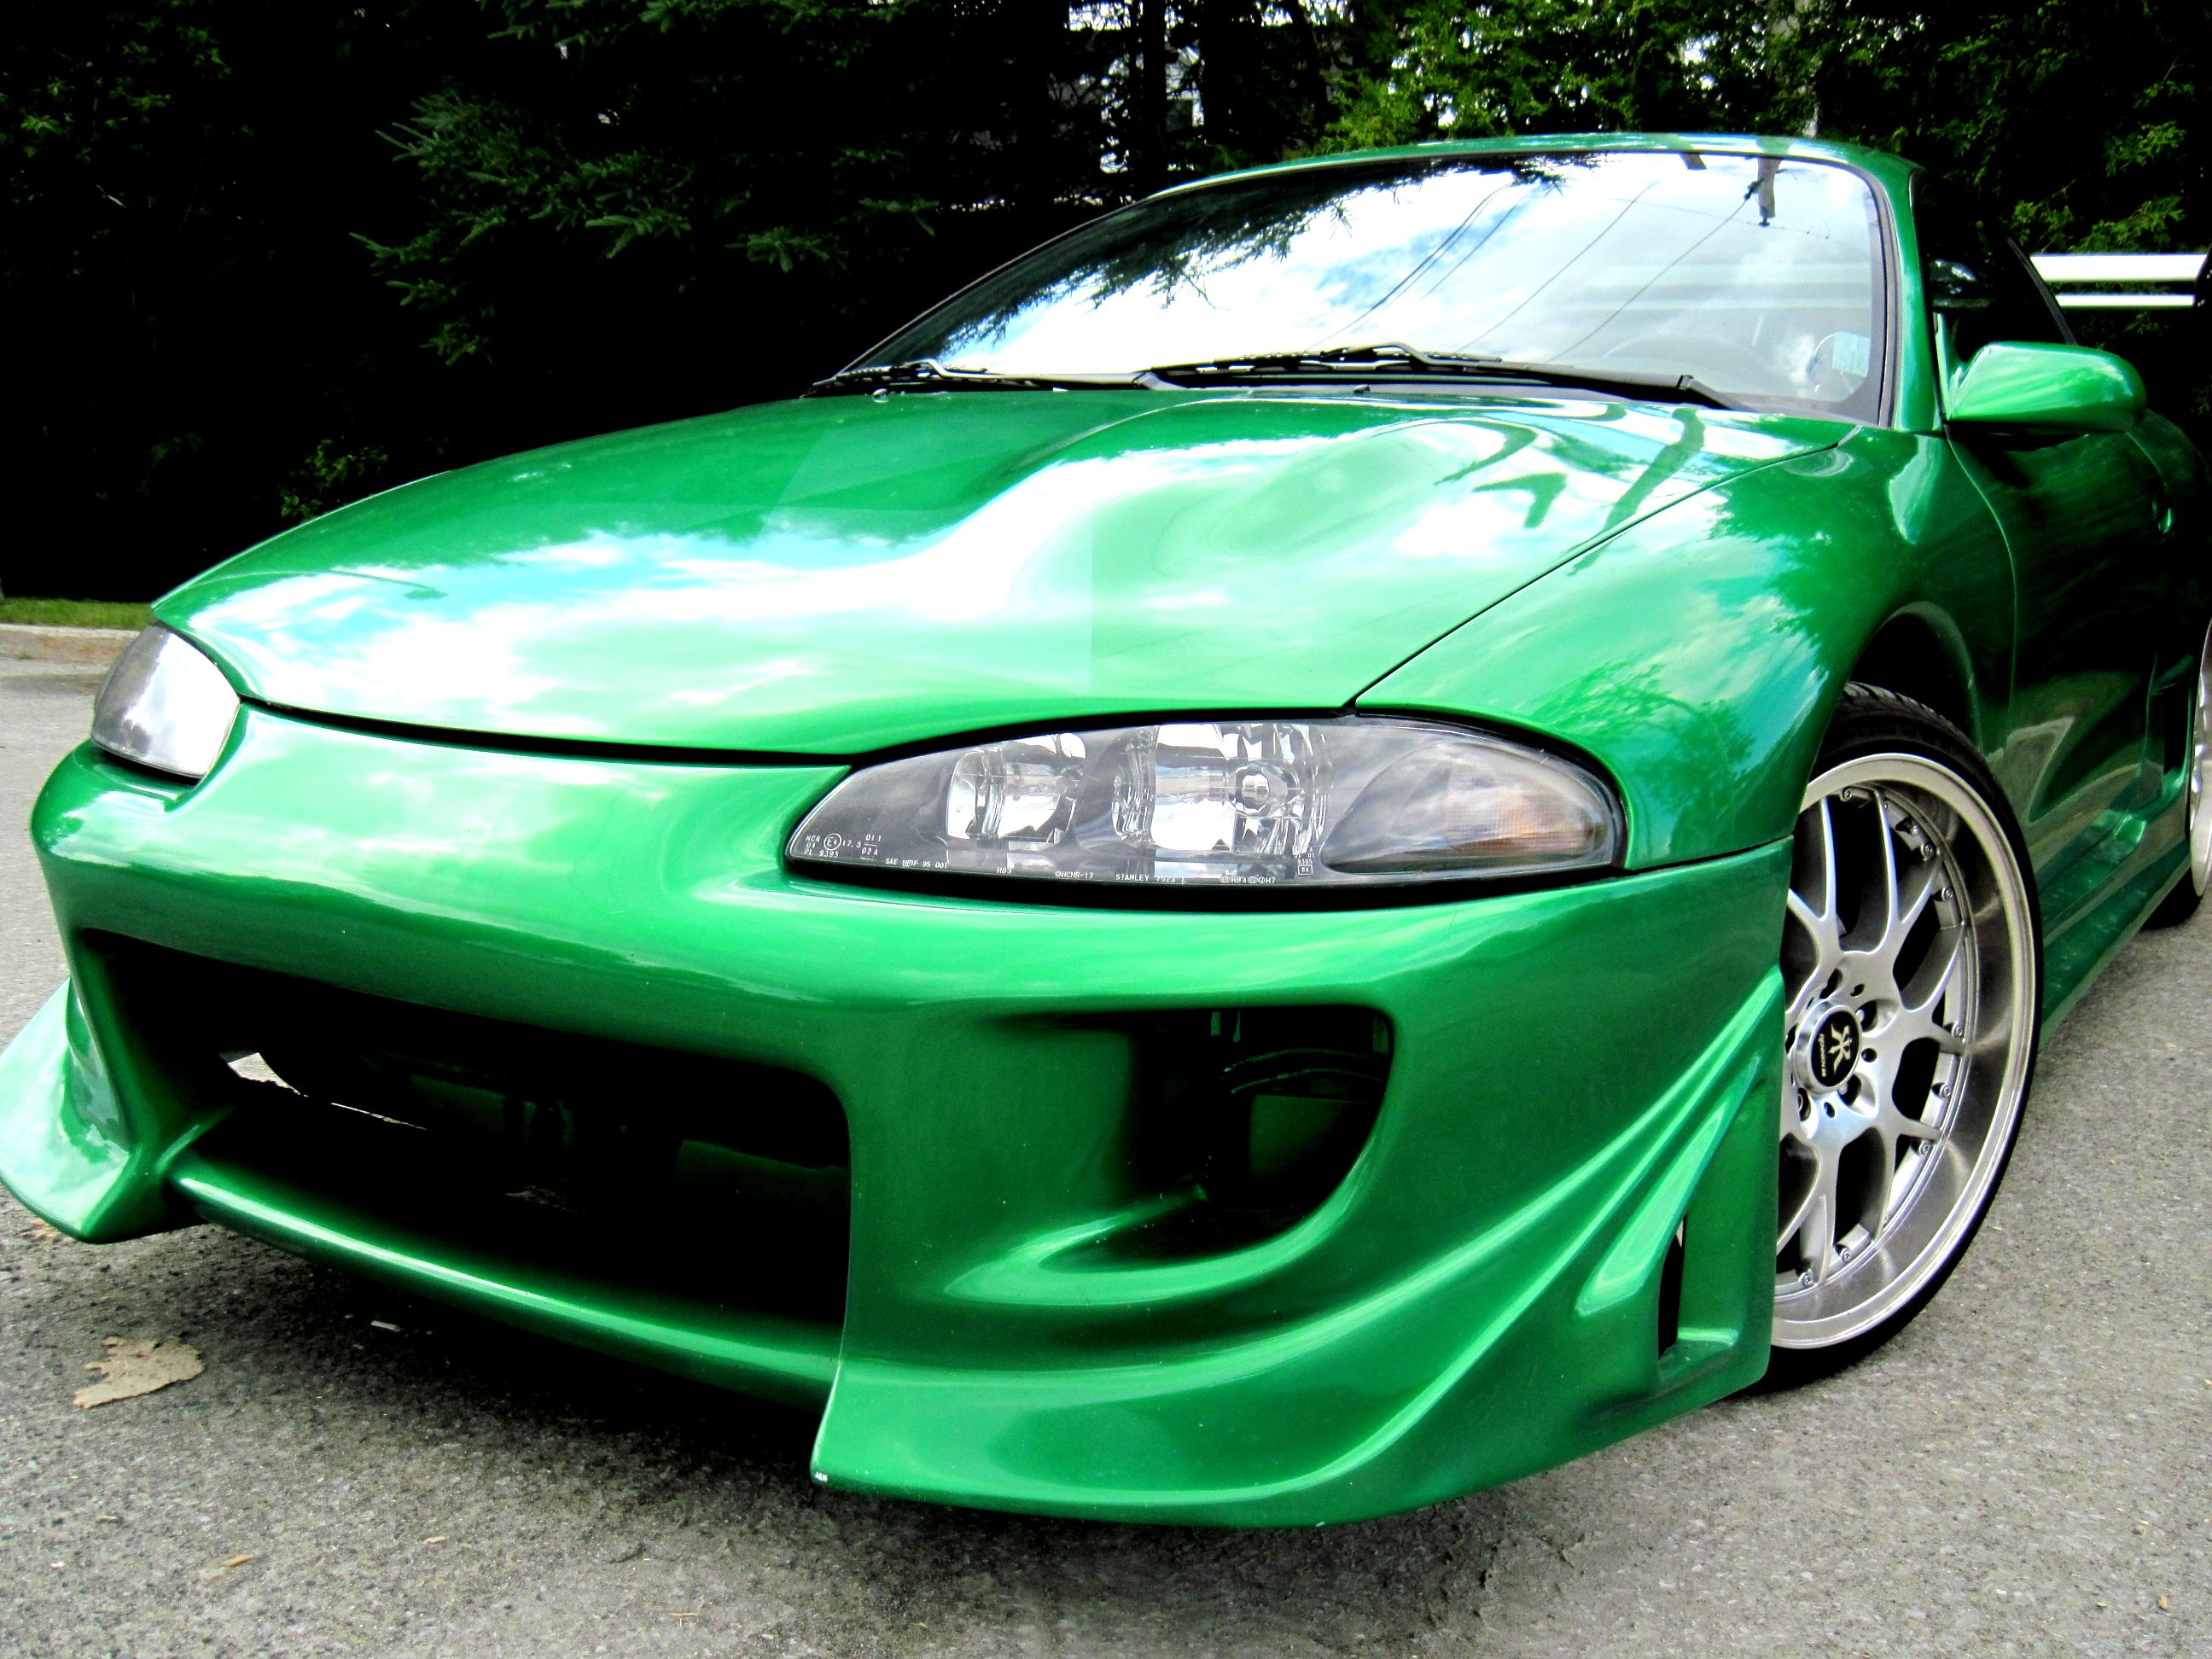 Mat1551 39 s 1998 mitsubishi eclipse gsx coupe 2d in for 1998 mitsubishi eclipse motor